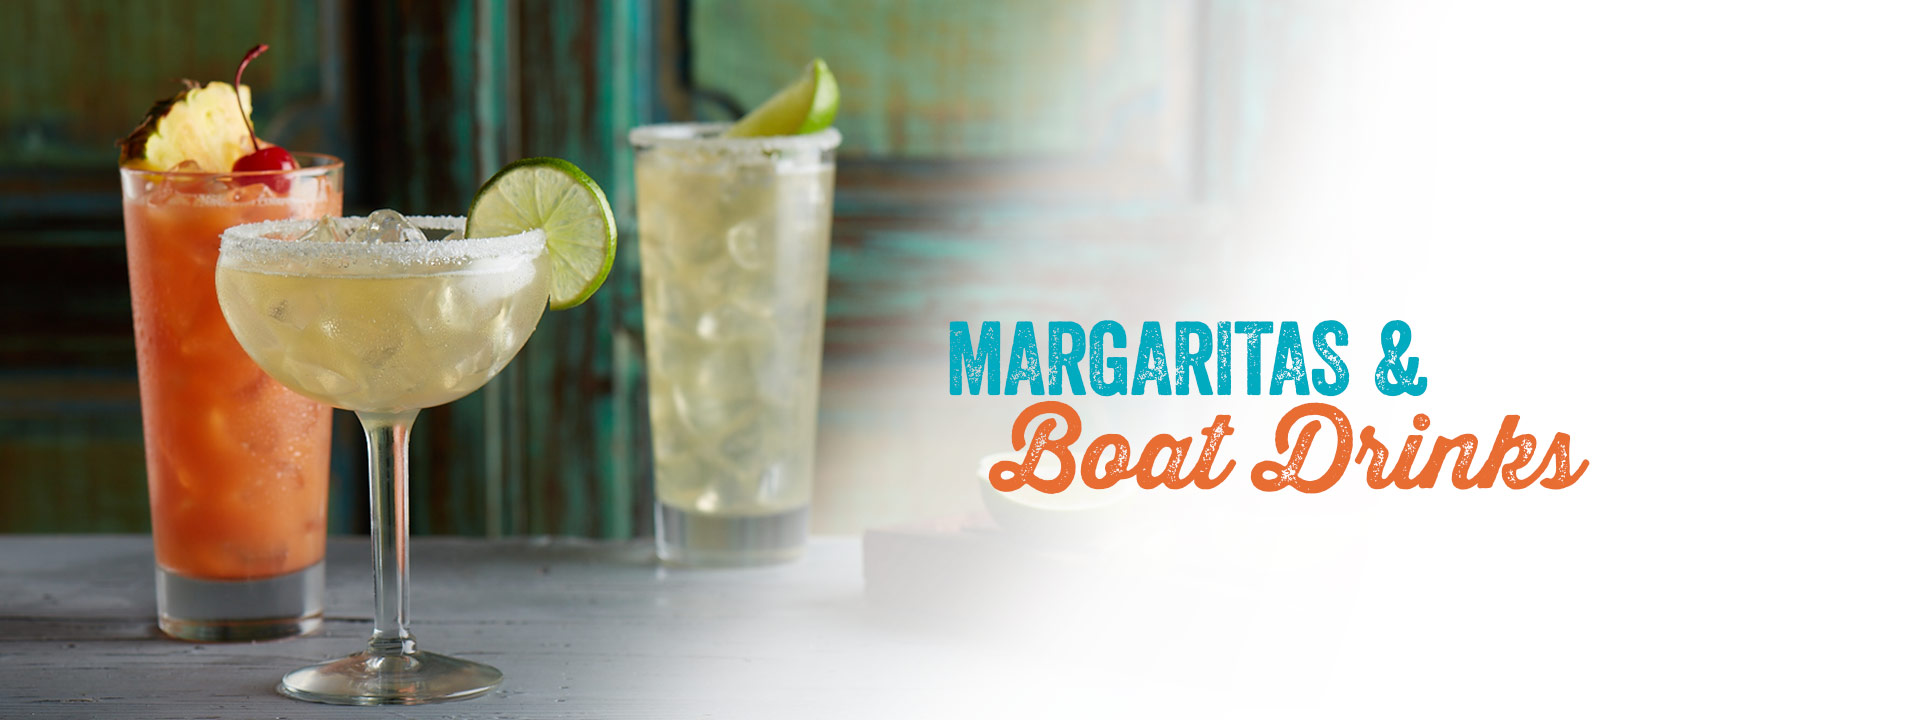 slide_margaritas_and_boat_drinks_14073_1491872789.jpg